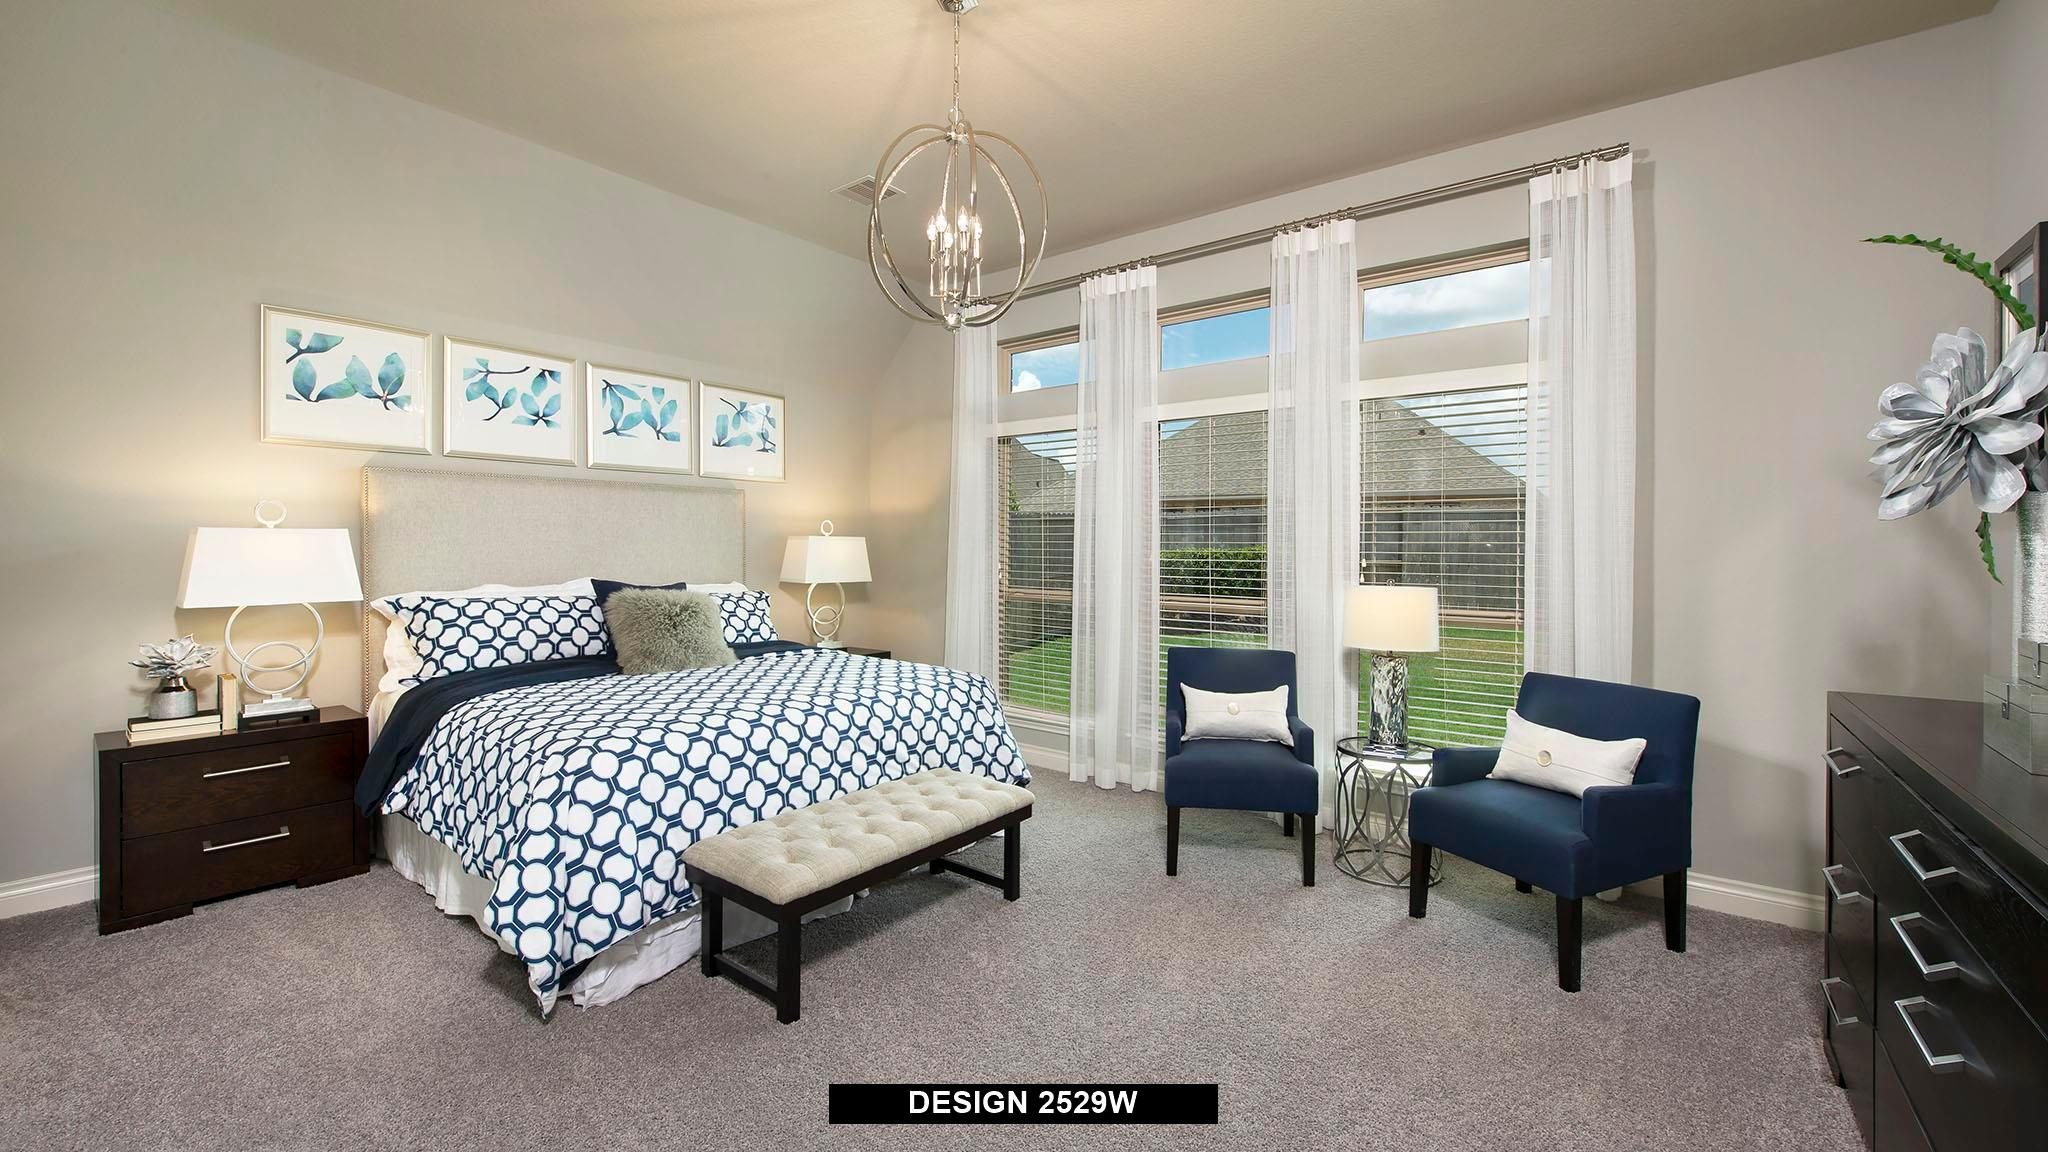 Bedroom featured in the 2529W By Perry Homes in San Antonio, TX